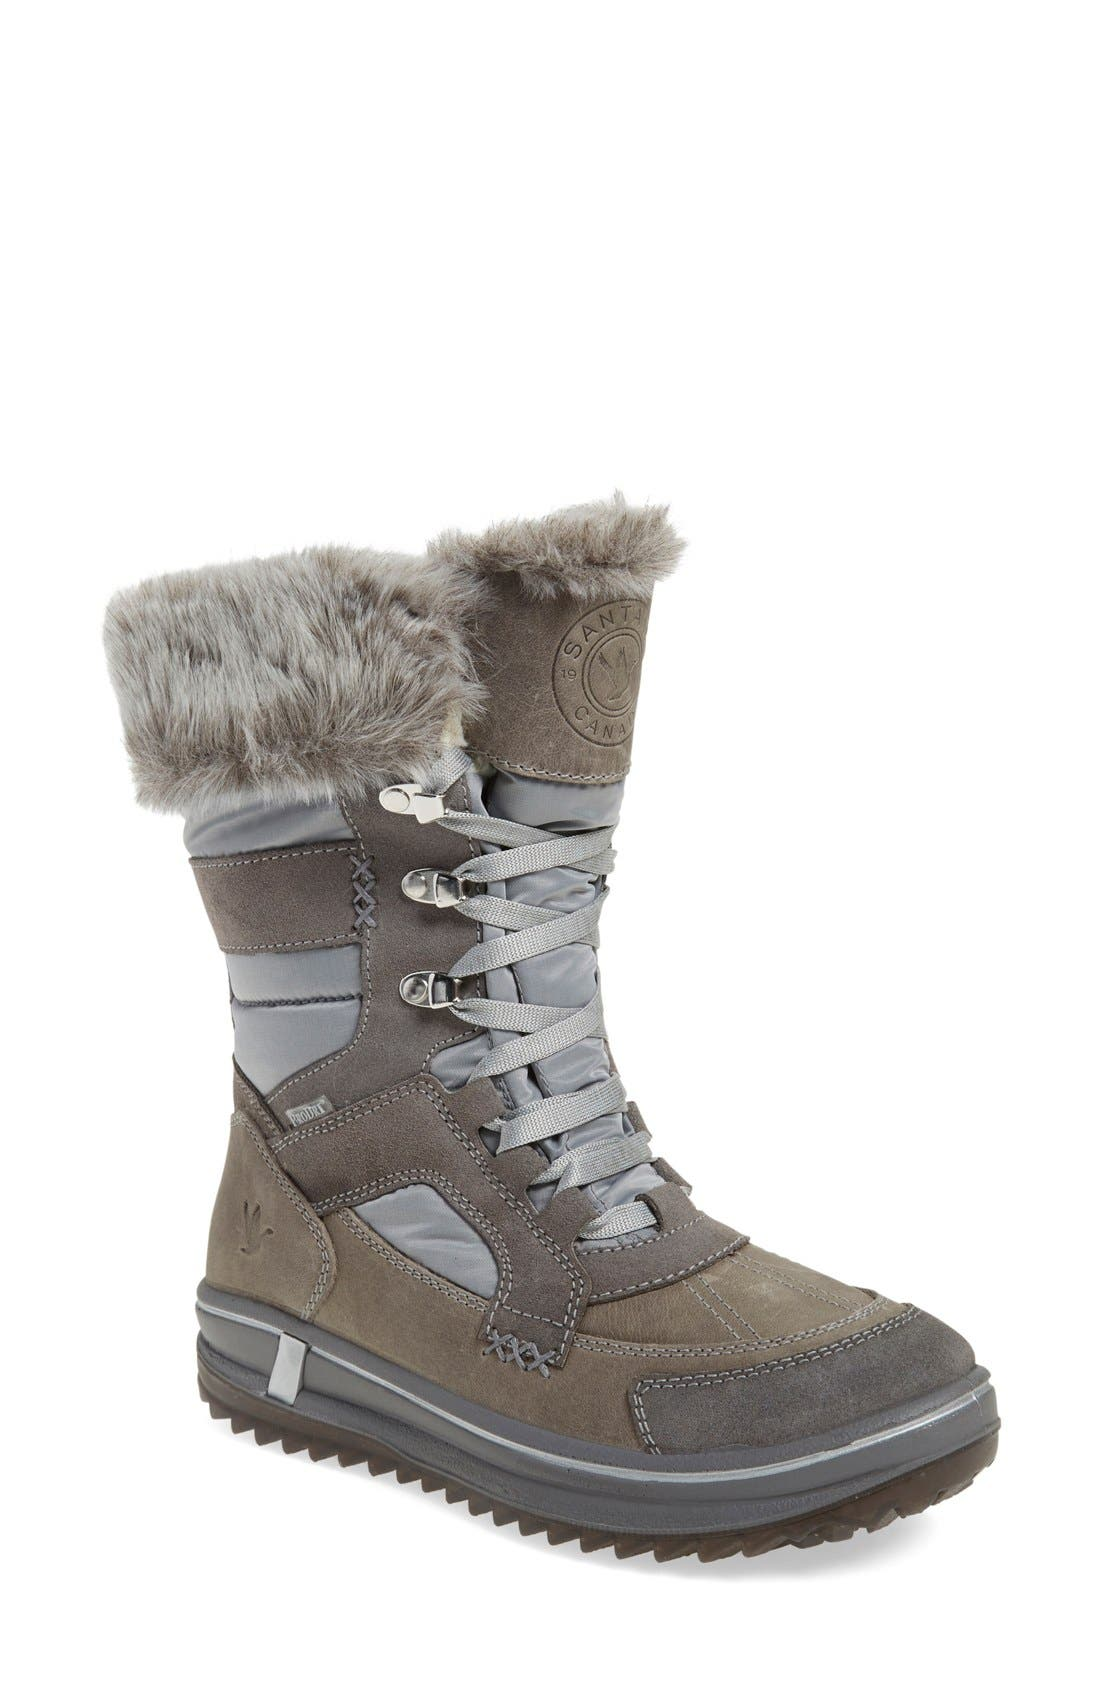 'Marta' Water Resistant Insulated Winter Boot,                             Main thumbnail 1, color,                             Grey Fabric